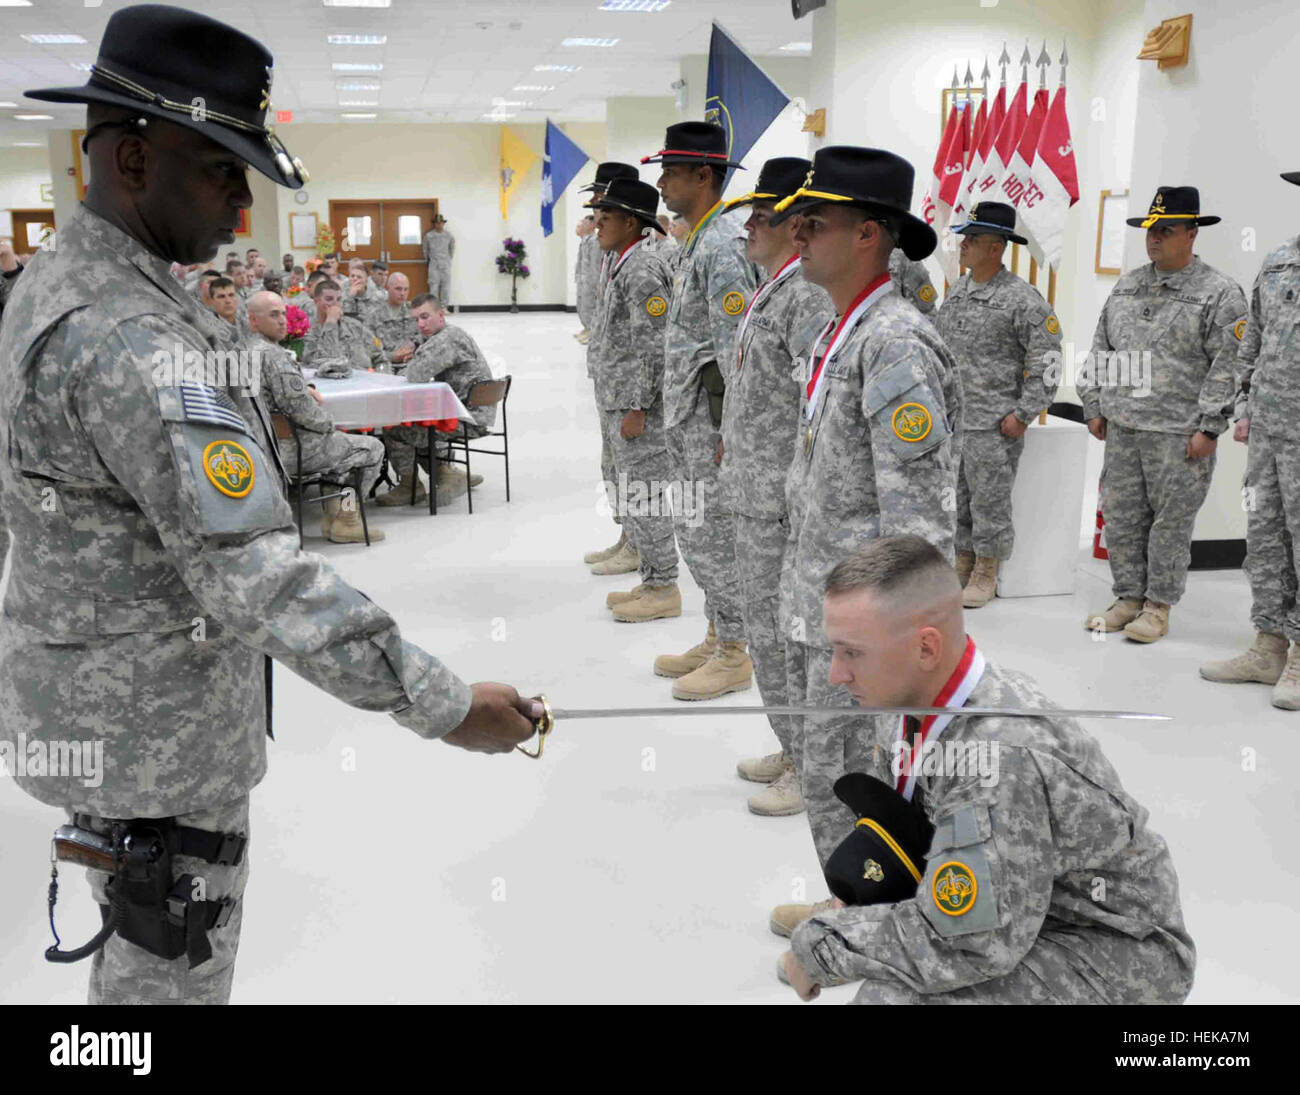 WASIT, Iraq – Col. Reginald E. Allen, commander of the 3rd Armored Cavalry Regiment knights a newly awarded trooper Stock Photo